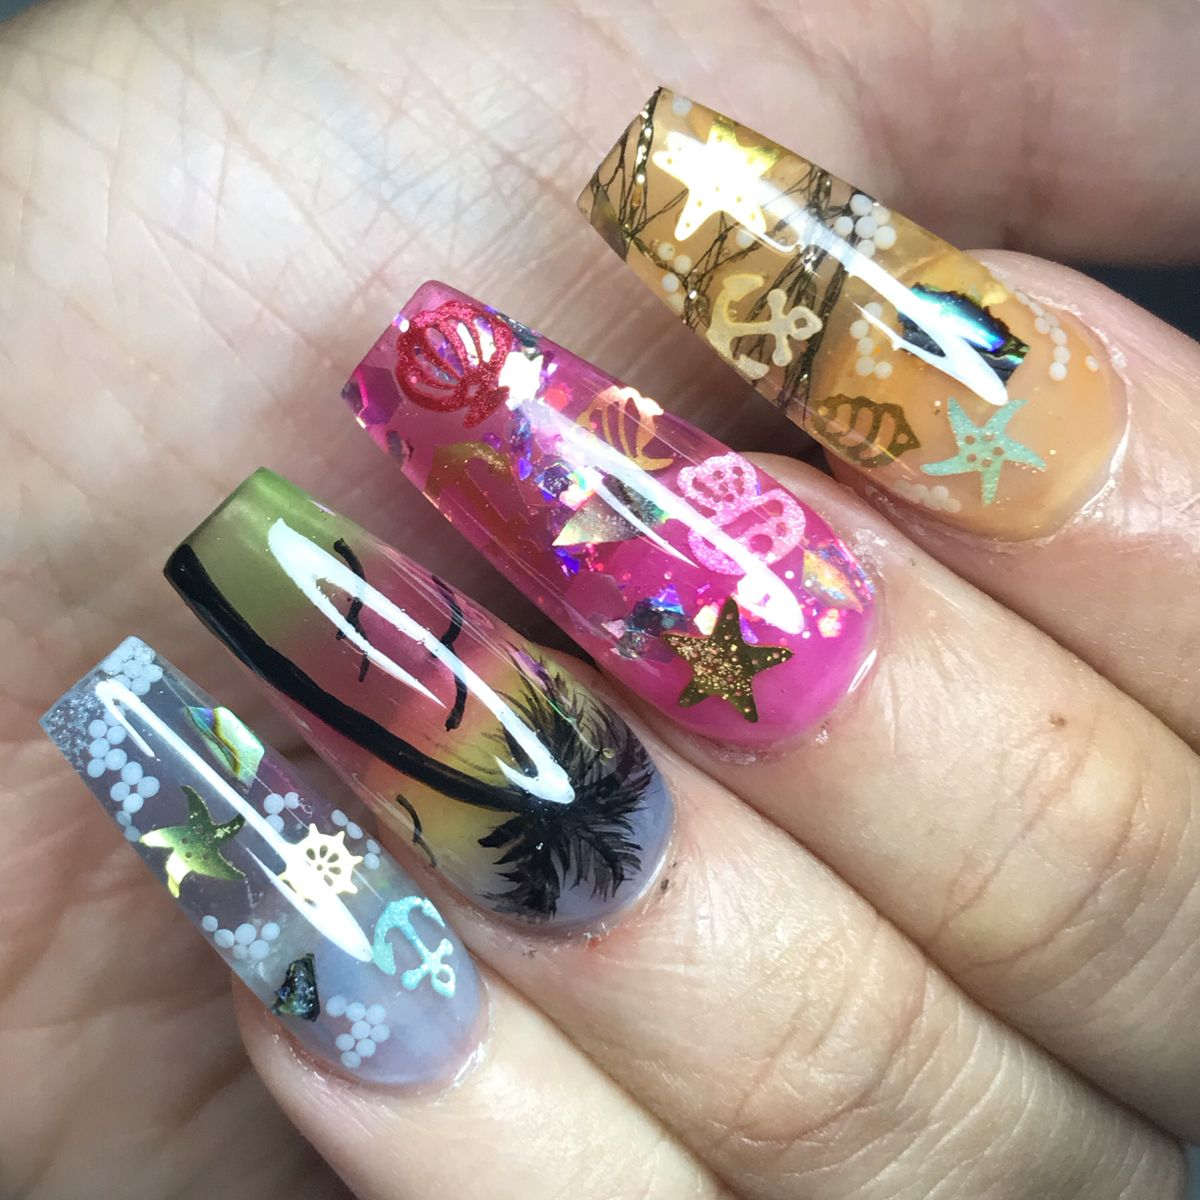 Acrylic nails by Frances Cortes instagram fcnailart #nails #nailartist #acrylicnails #jelly #nailsofinstagram #nailartdesigns